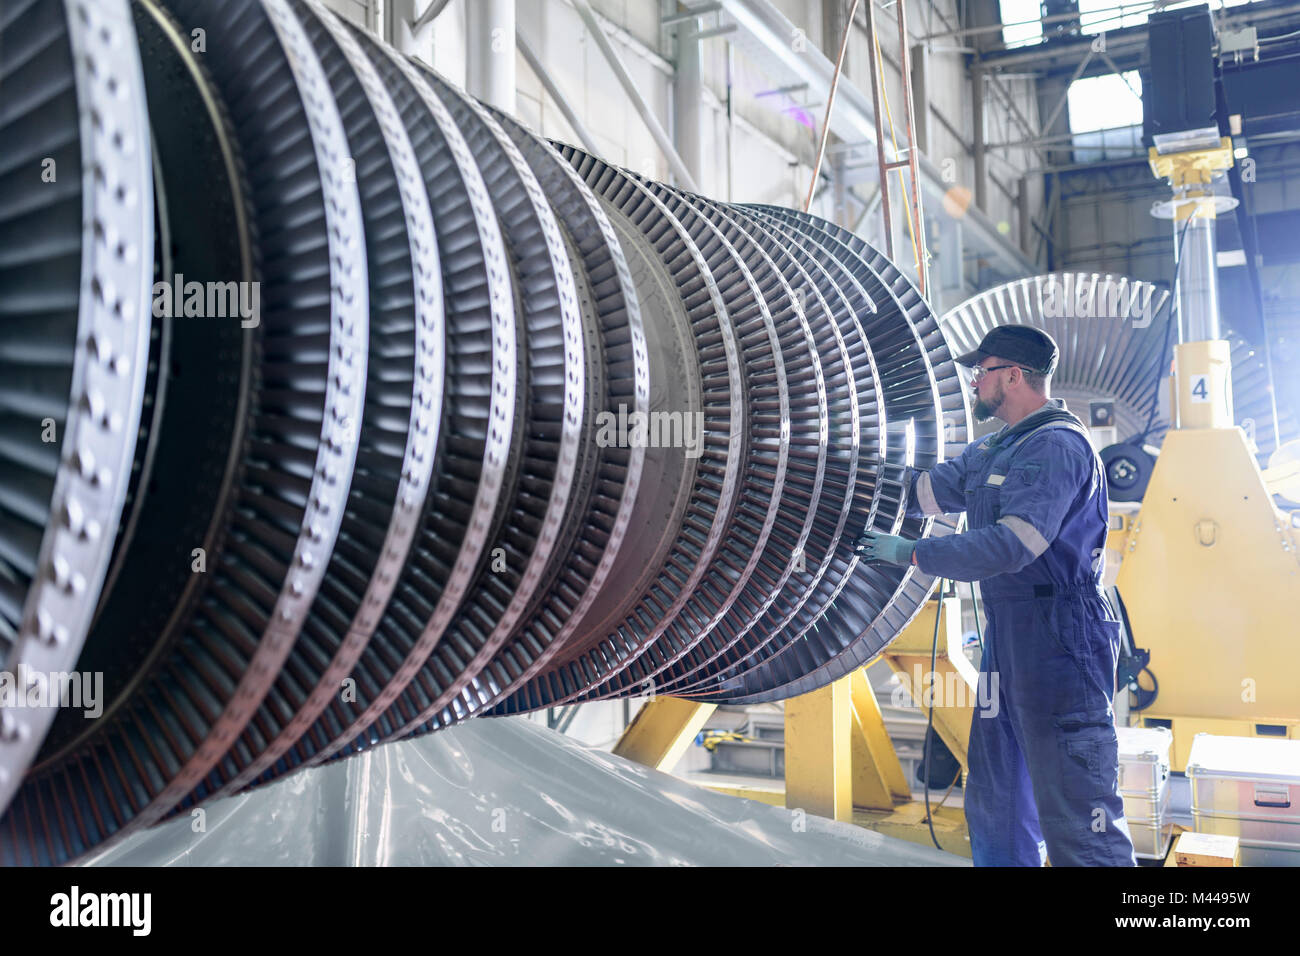 Engineer working on high pressure steam turbine in turbine maintenance factory - Stock Image